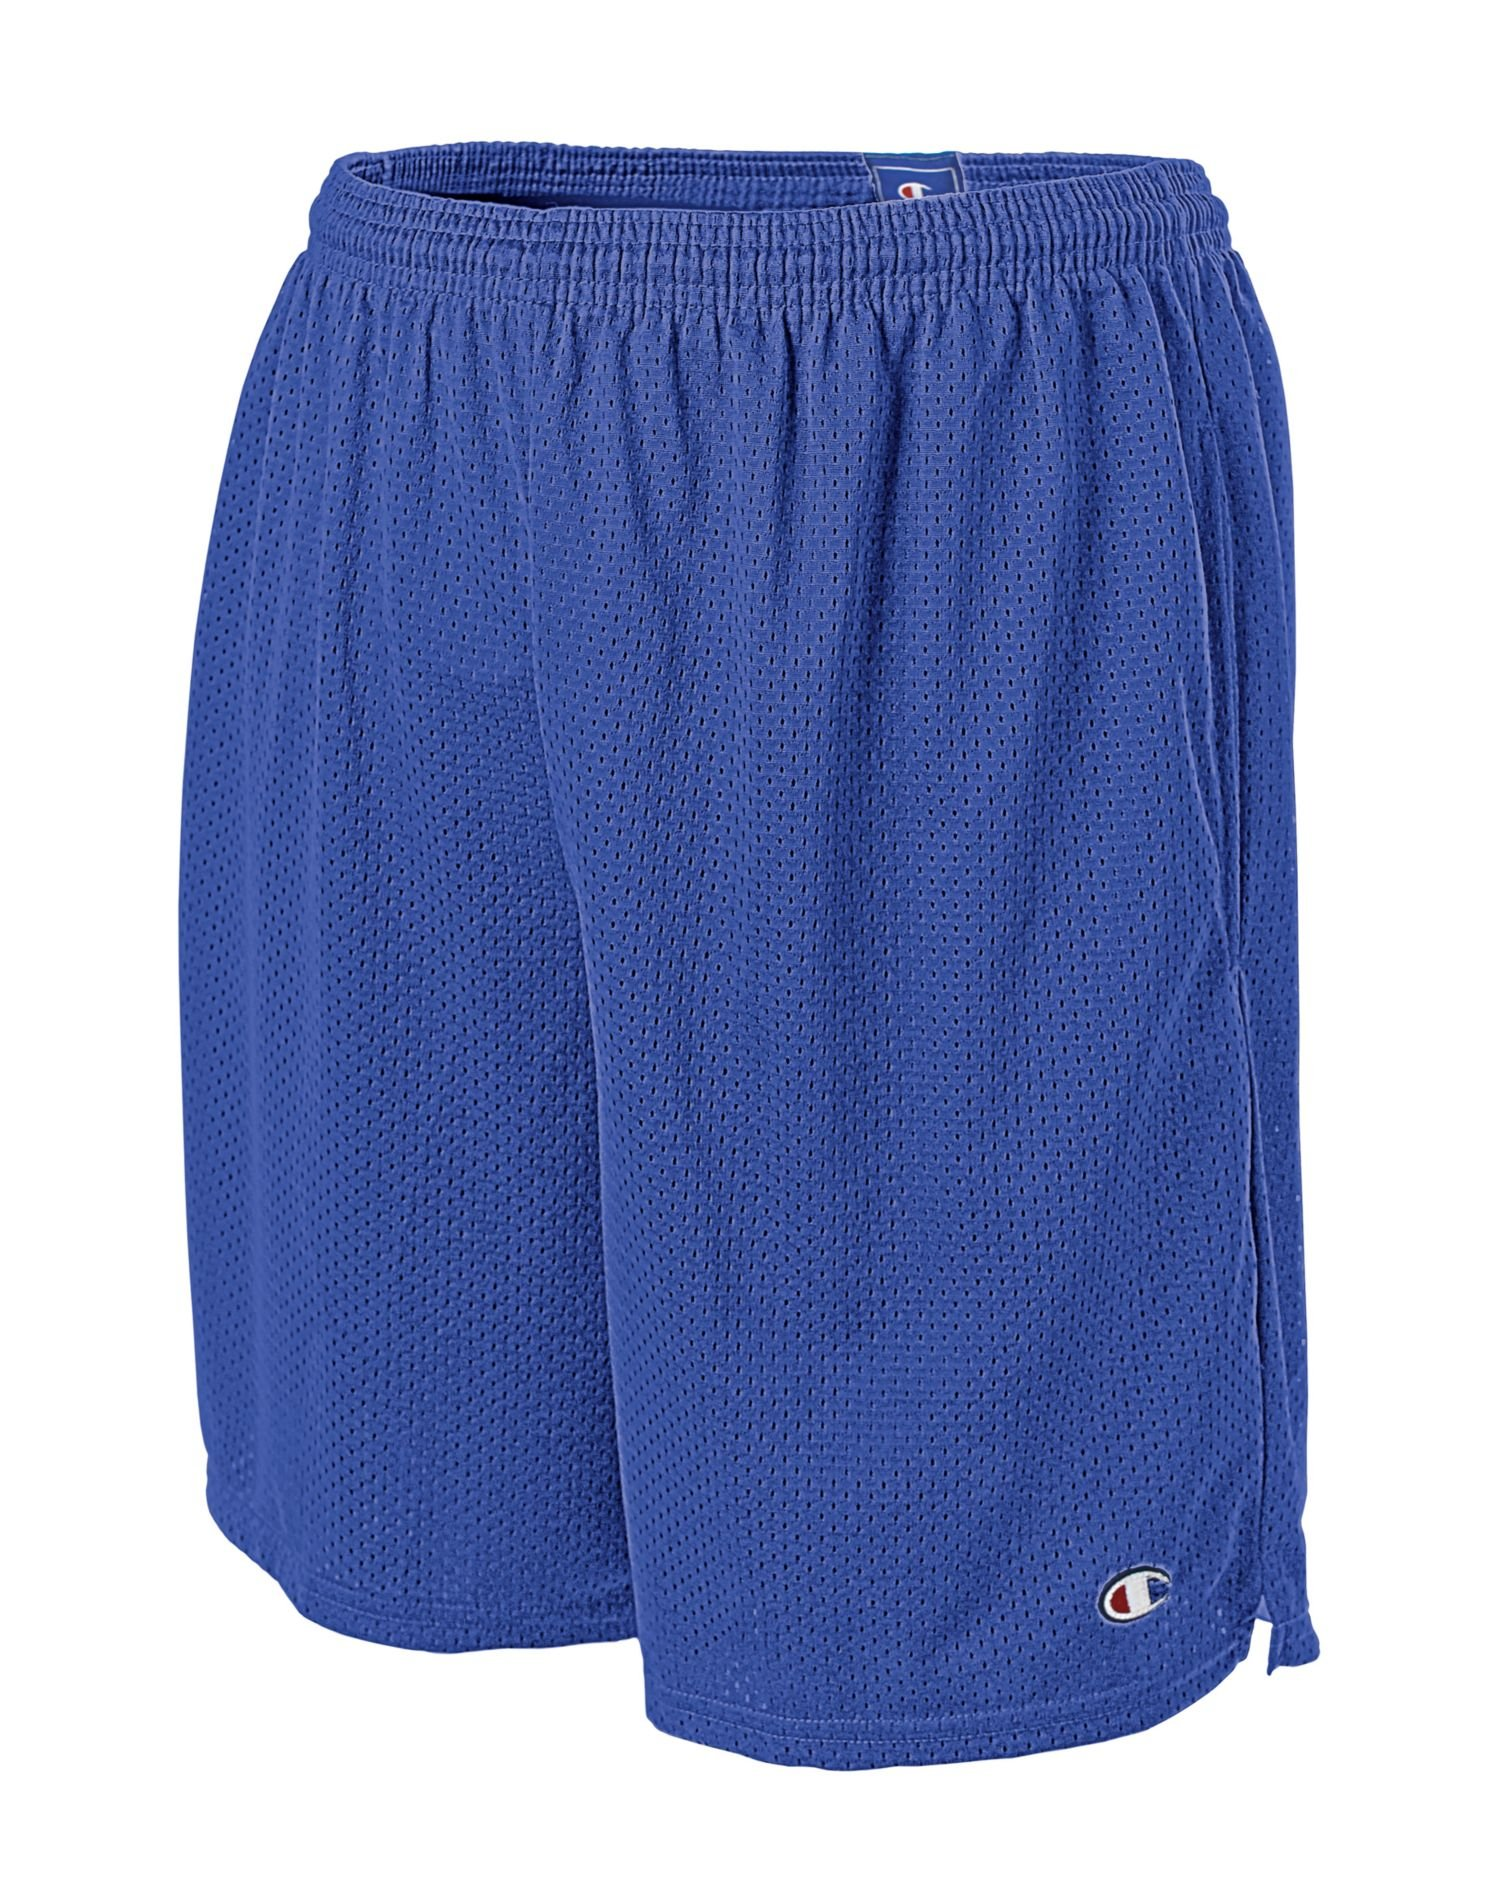 Champion Men's Long Mesh Short with Pockets, Team Blue, XXXX-Large by Champion